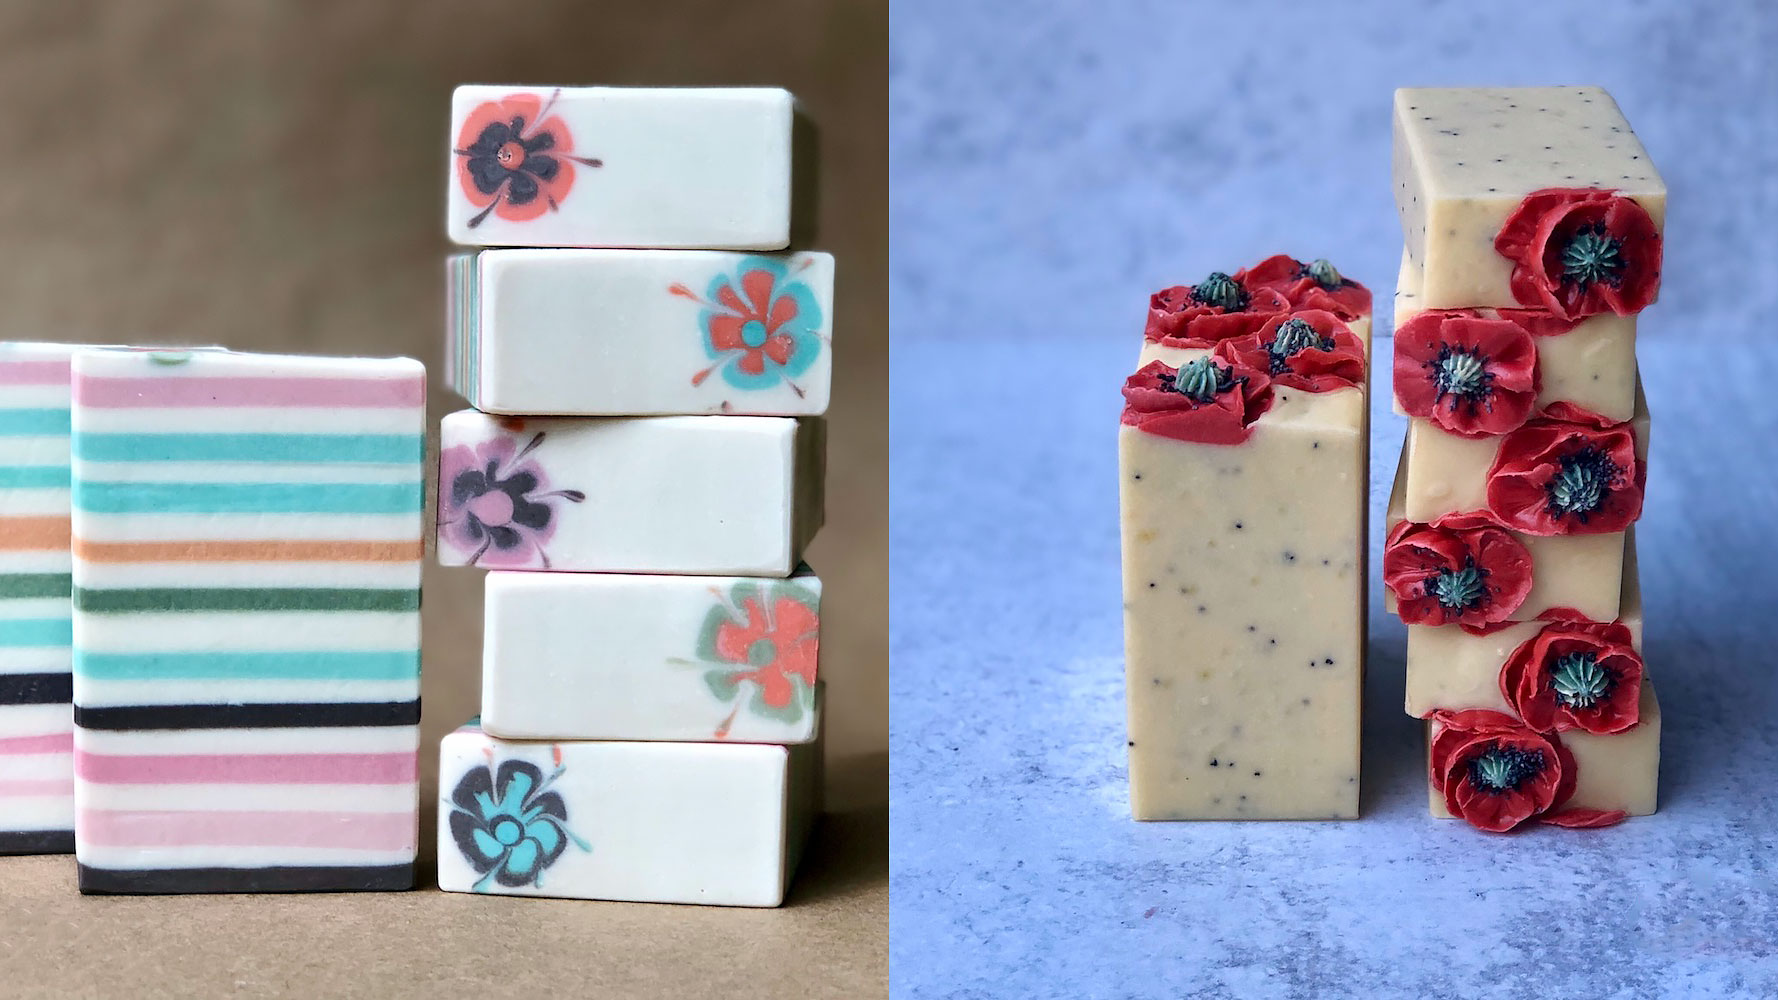 Handcrafted Artisan Soap from MagiDo